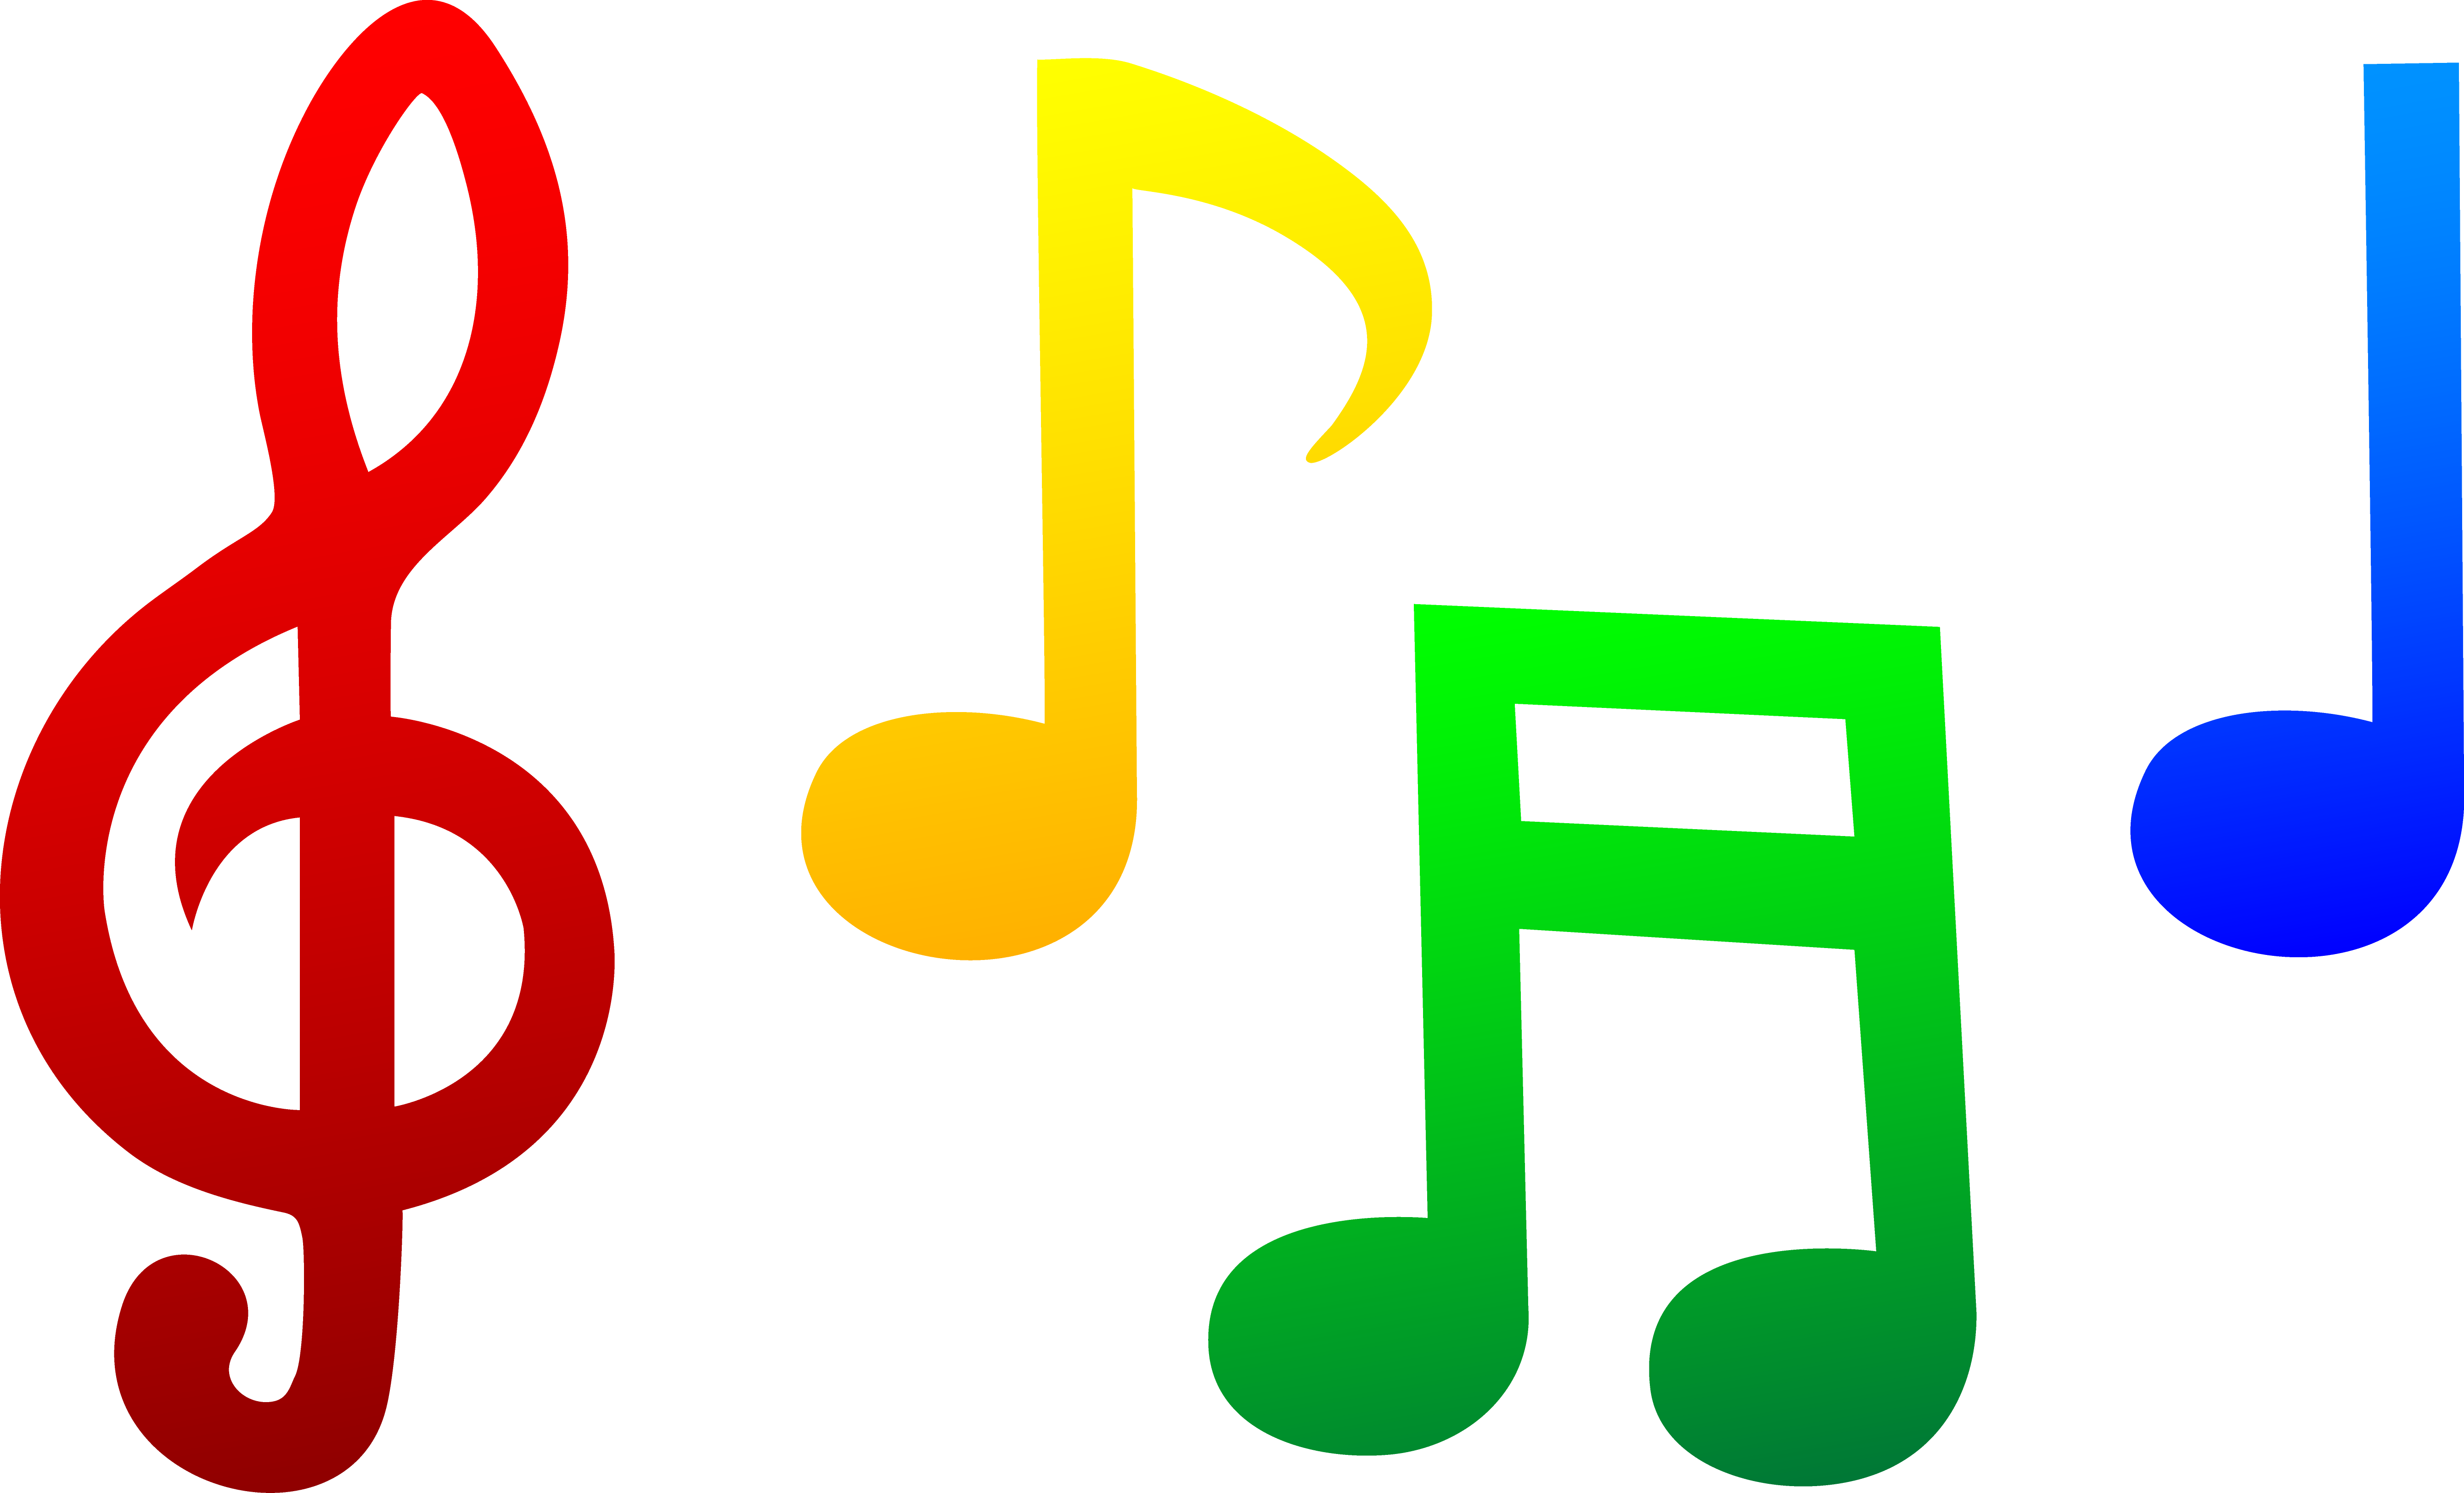 5366x3252 Free Clipart Colorful Music Notes Amp Free Clip Art Colorful Music